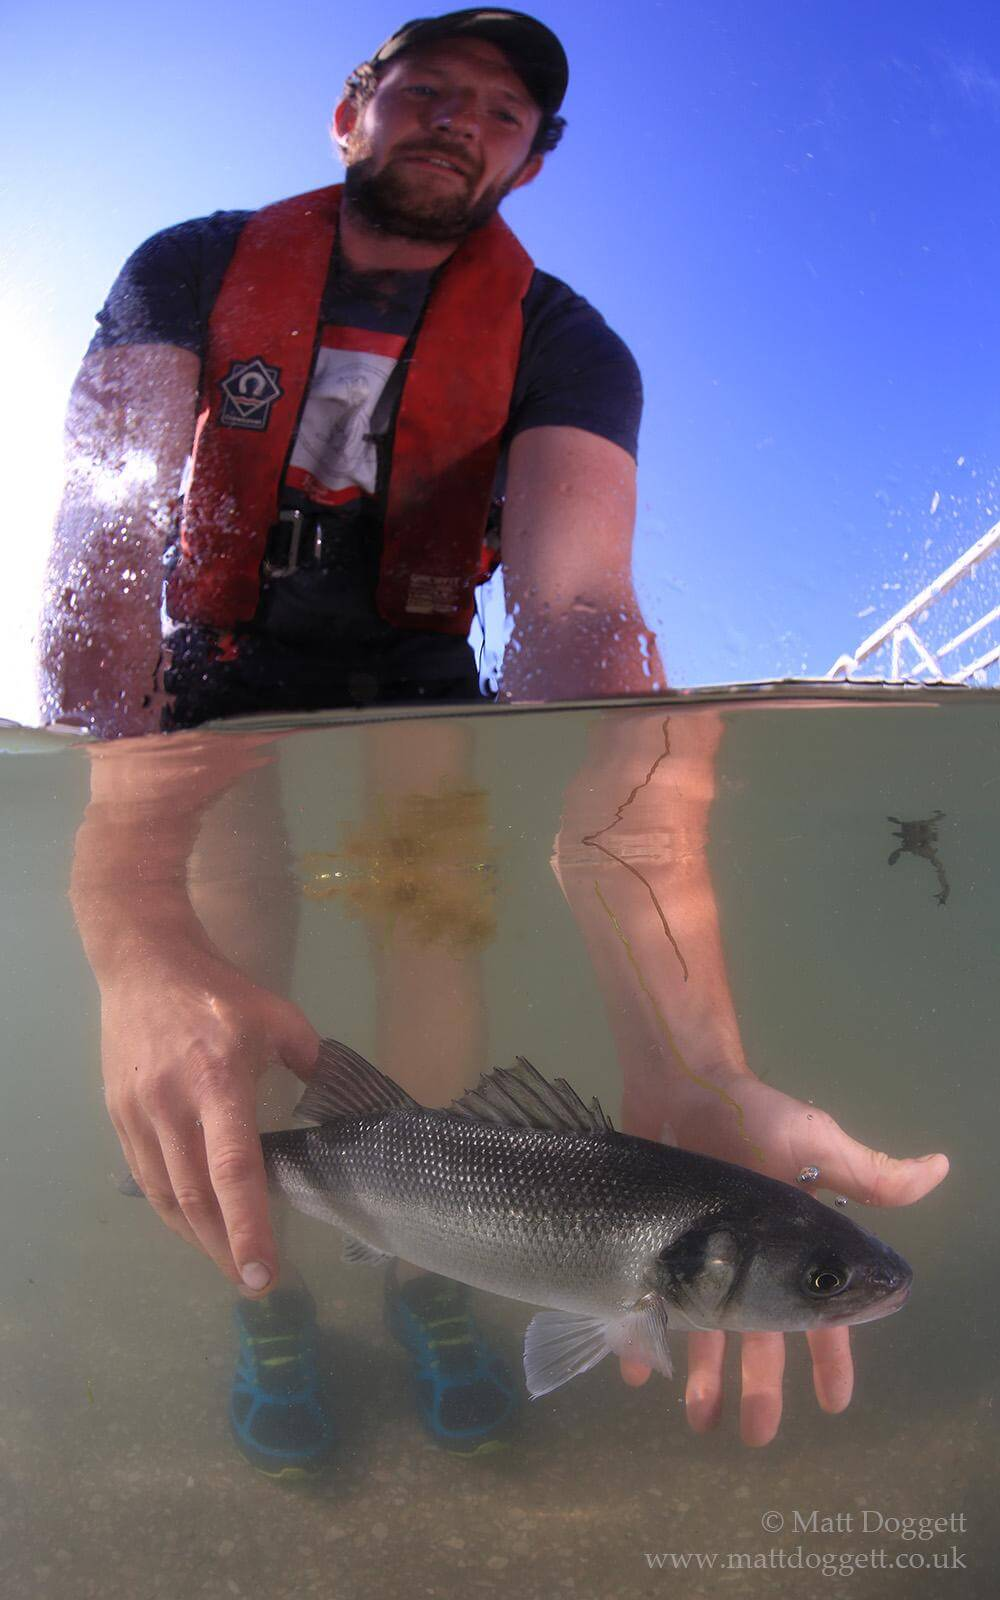 Documenting the release of a tagged bass as part of Plymouth University's i-BASS project.